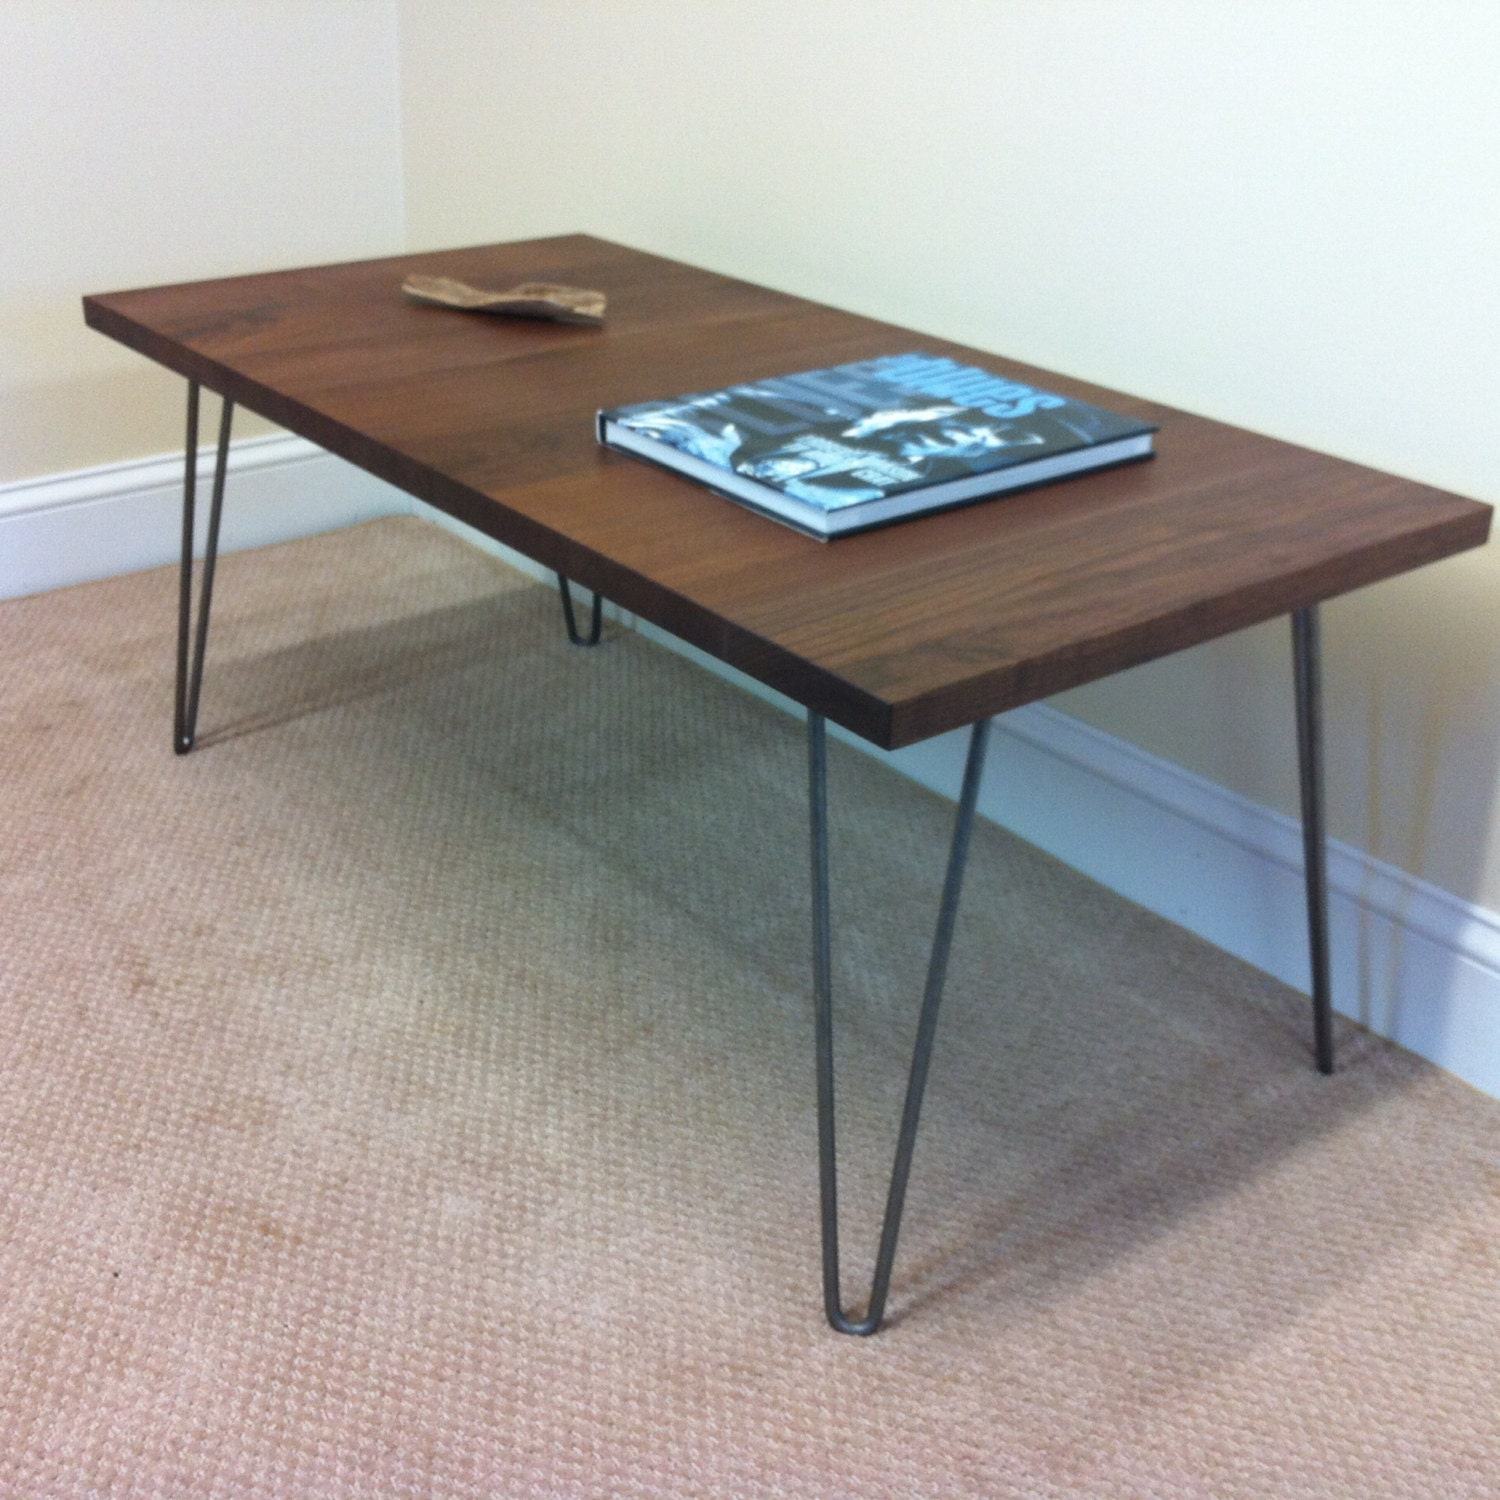 Mid Century Coffee Table Black: Mid Century Modern Coffee Table Featuring Black By Scottcassin